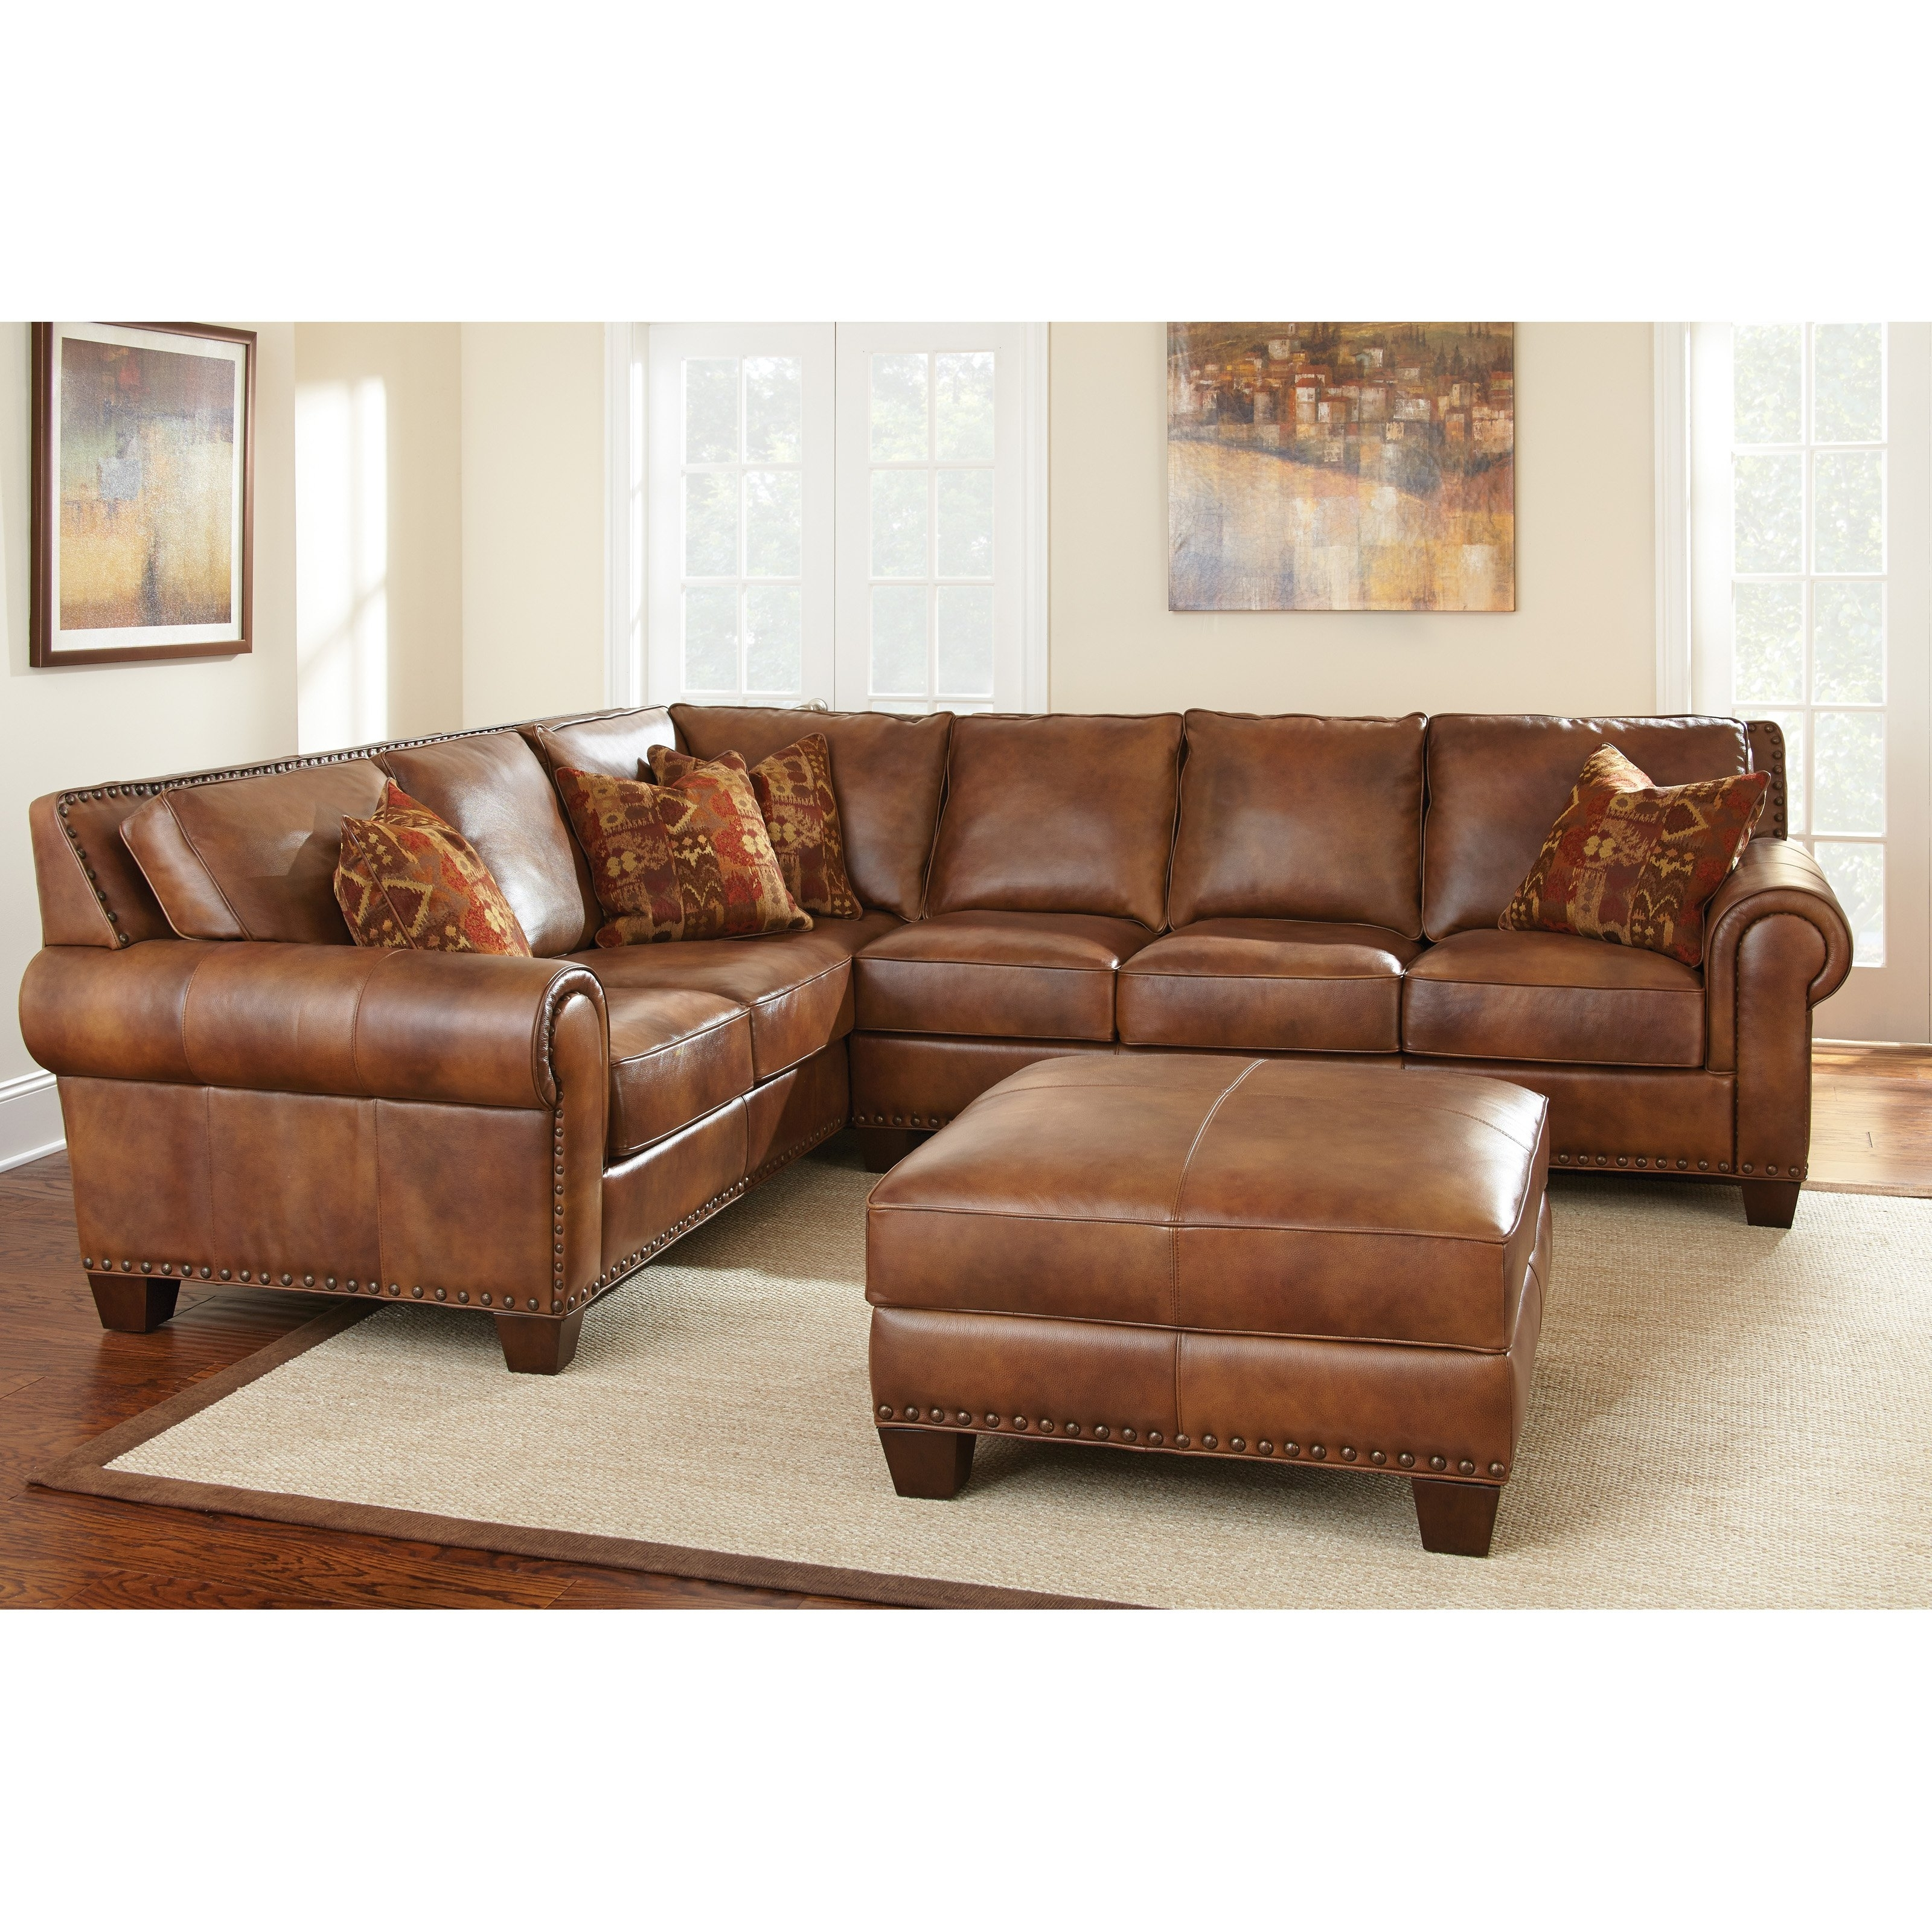 Ivan Smith Sectional Sofas Throughout Favorite Have To Have It (View 8 of 15)